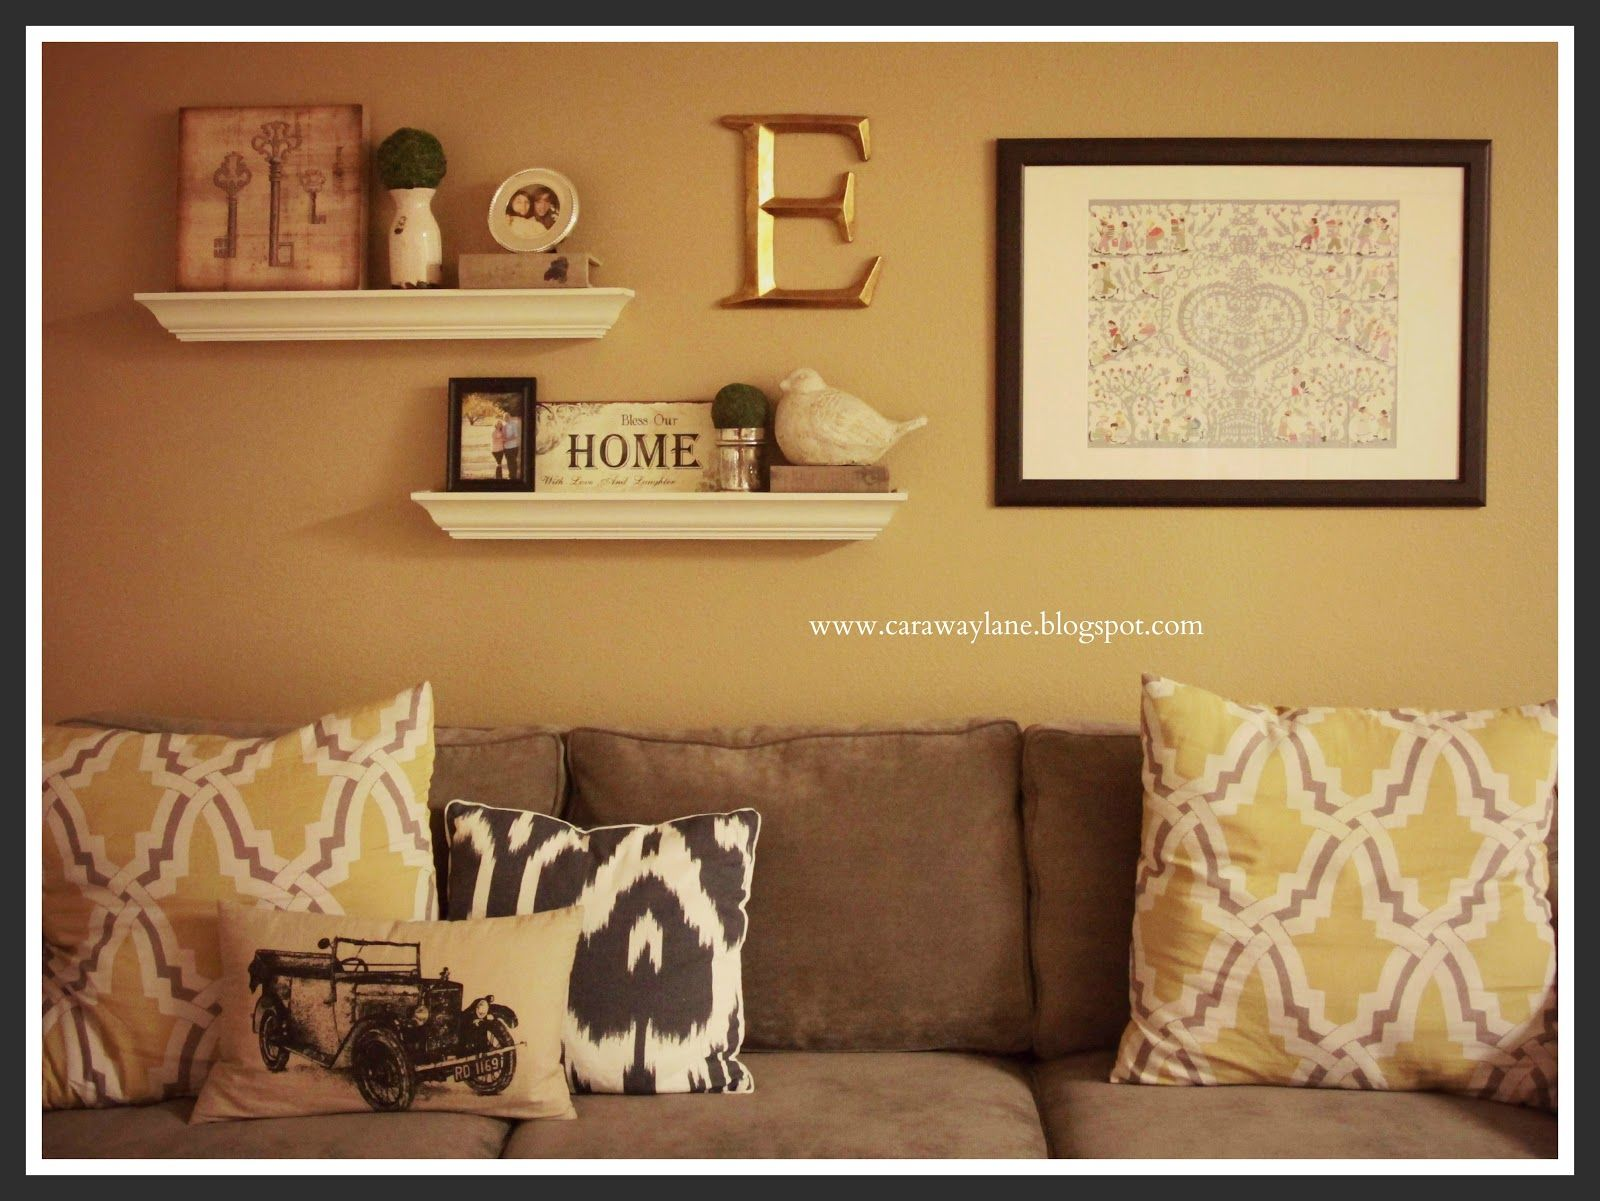 decorate over a sofa | Above the Couch Wall Decor | Home Sweet ...